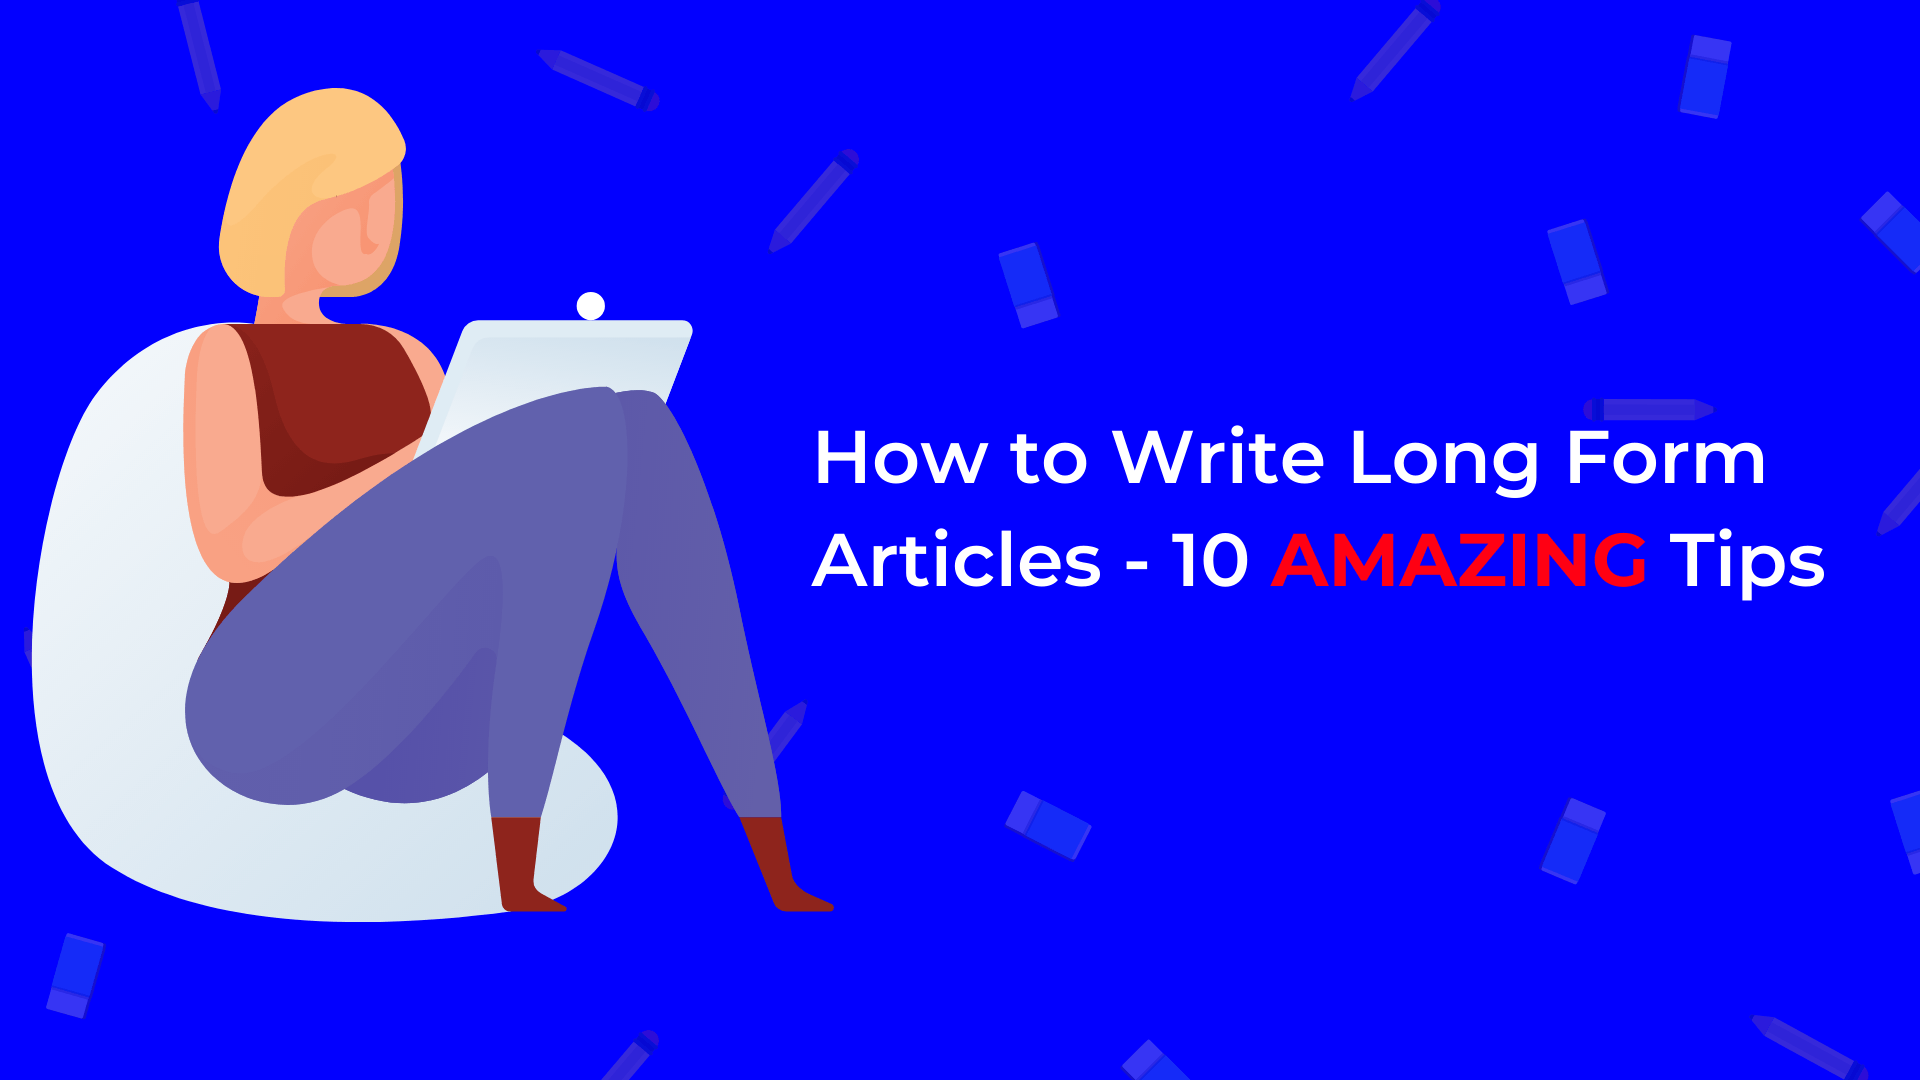 How-to-Write-Long-Form-Articles-10-AMAZING-Tips